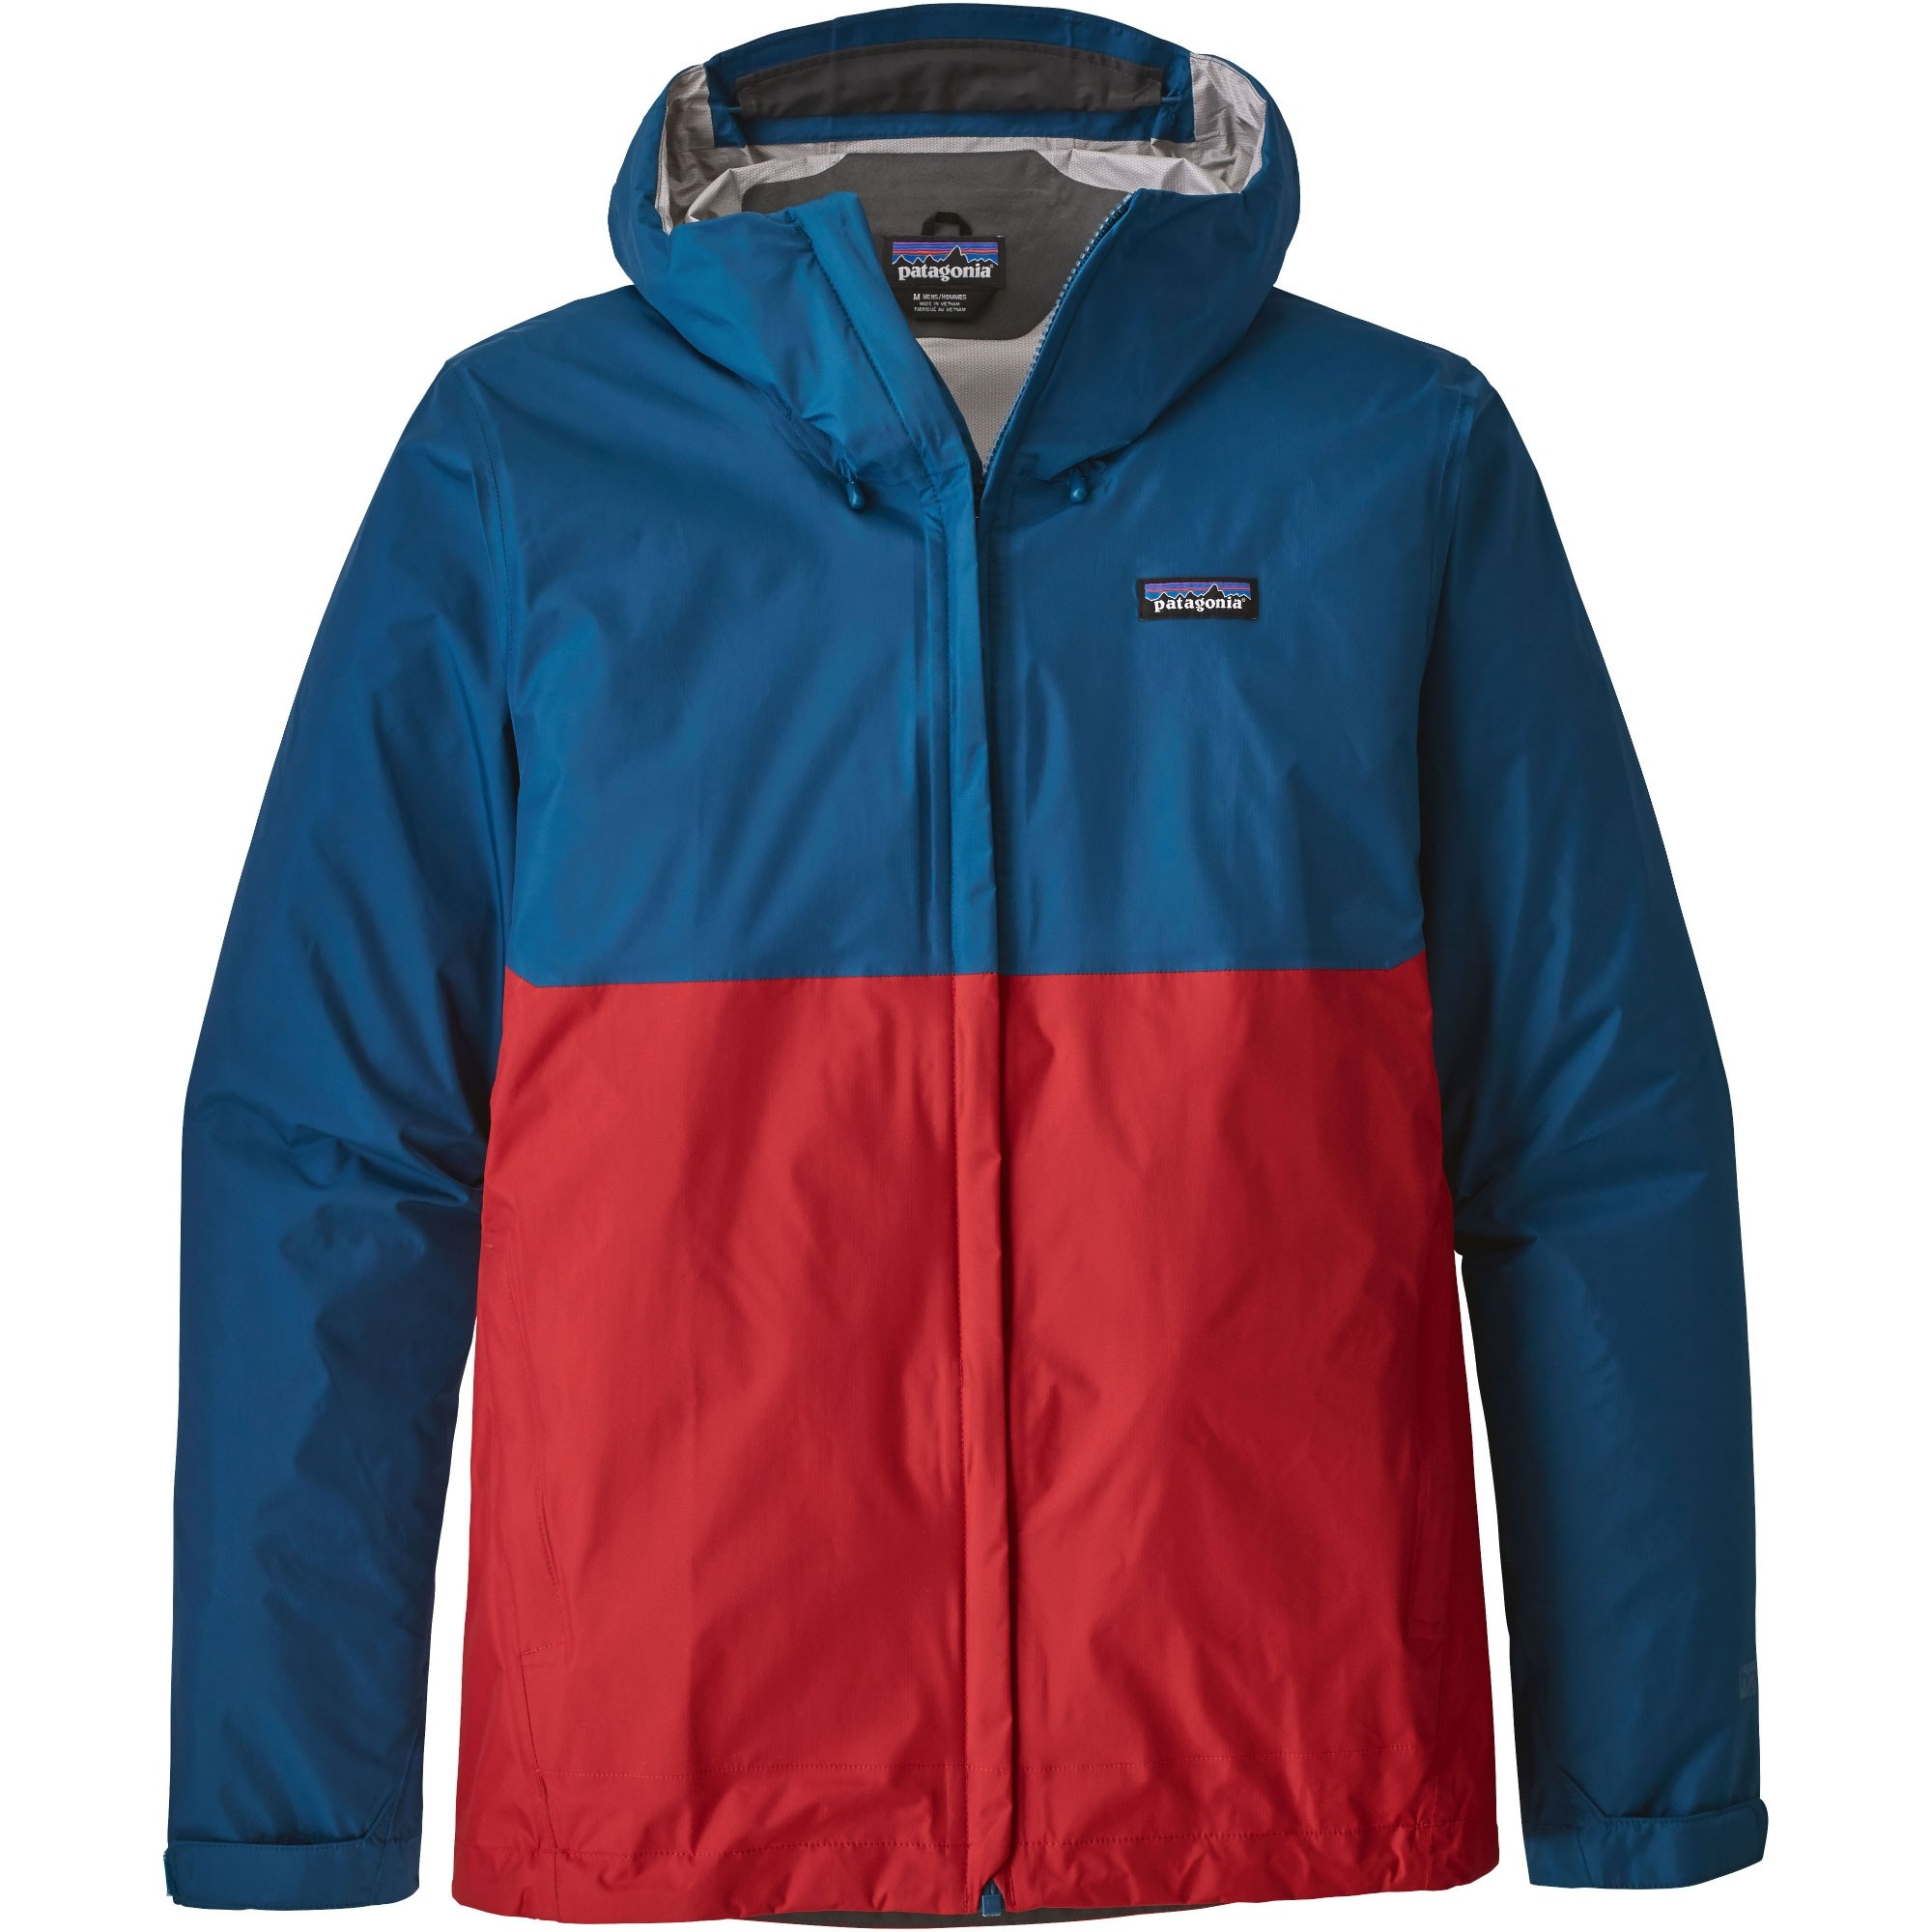 Patagonia Torrentshell Men's Jacket - Fire with Big Sur Blue